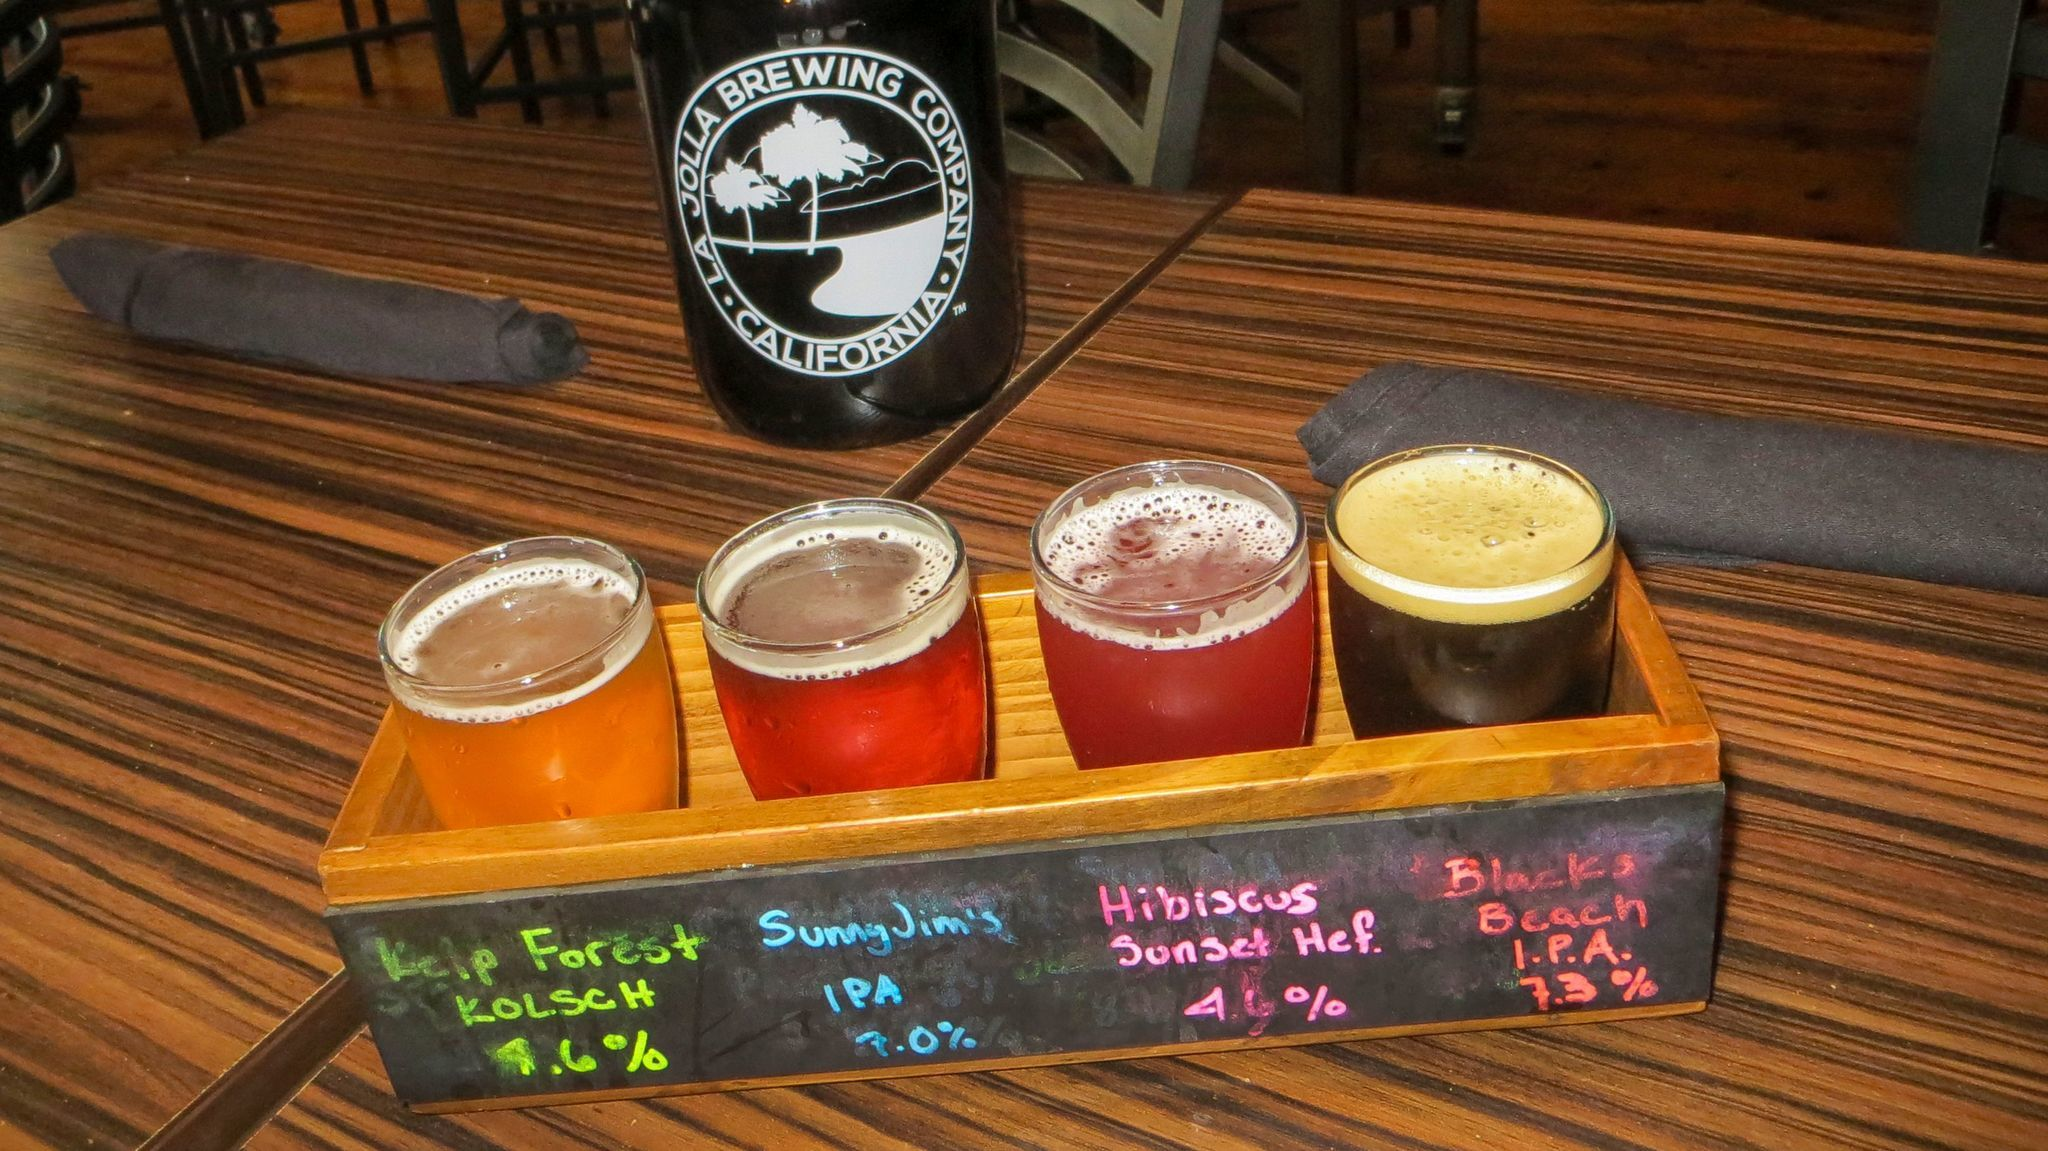 Tasters at La Jolla Brewing Co., which also serves food, wine and mixed drinks.